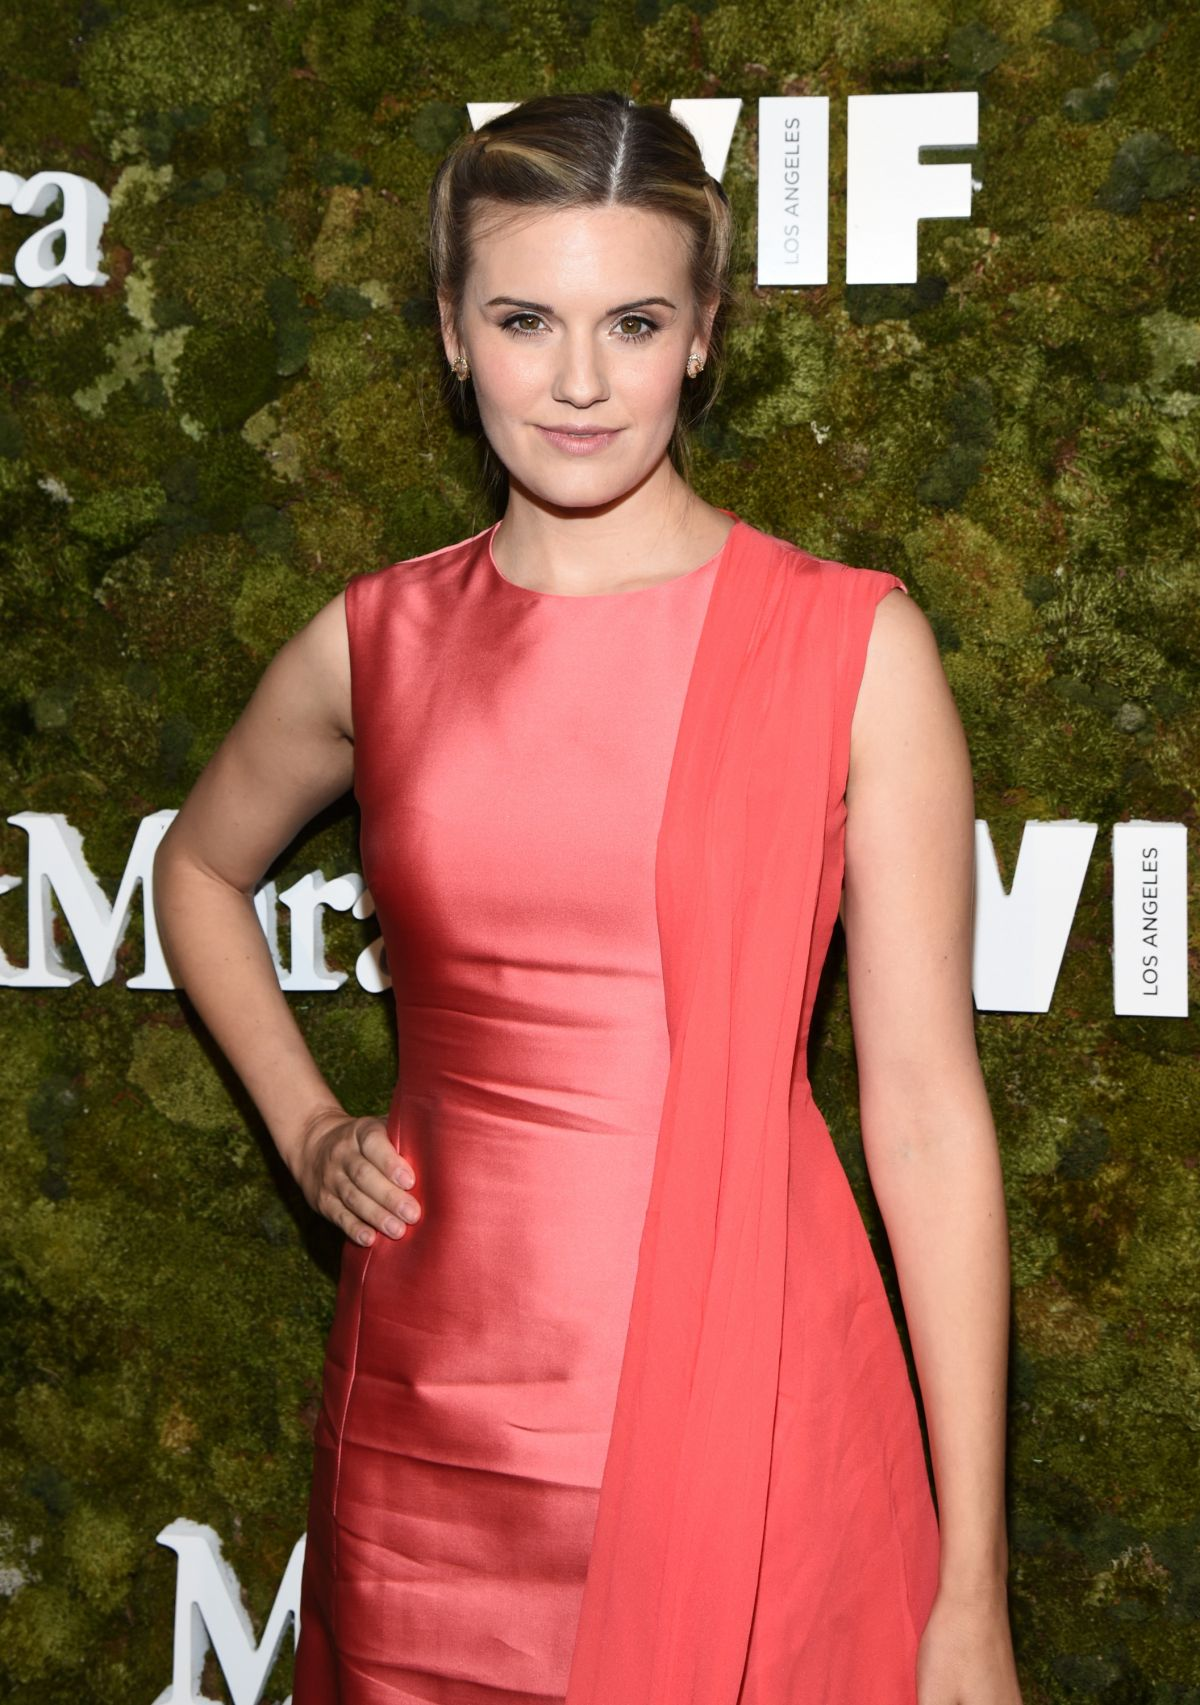 MAGGIE GRACE at Max Mara Women in Film Face of the Future Award in Hollywood